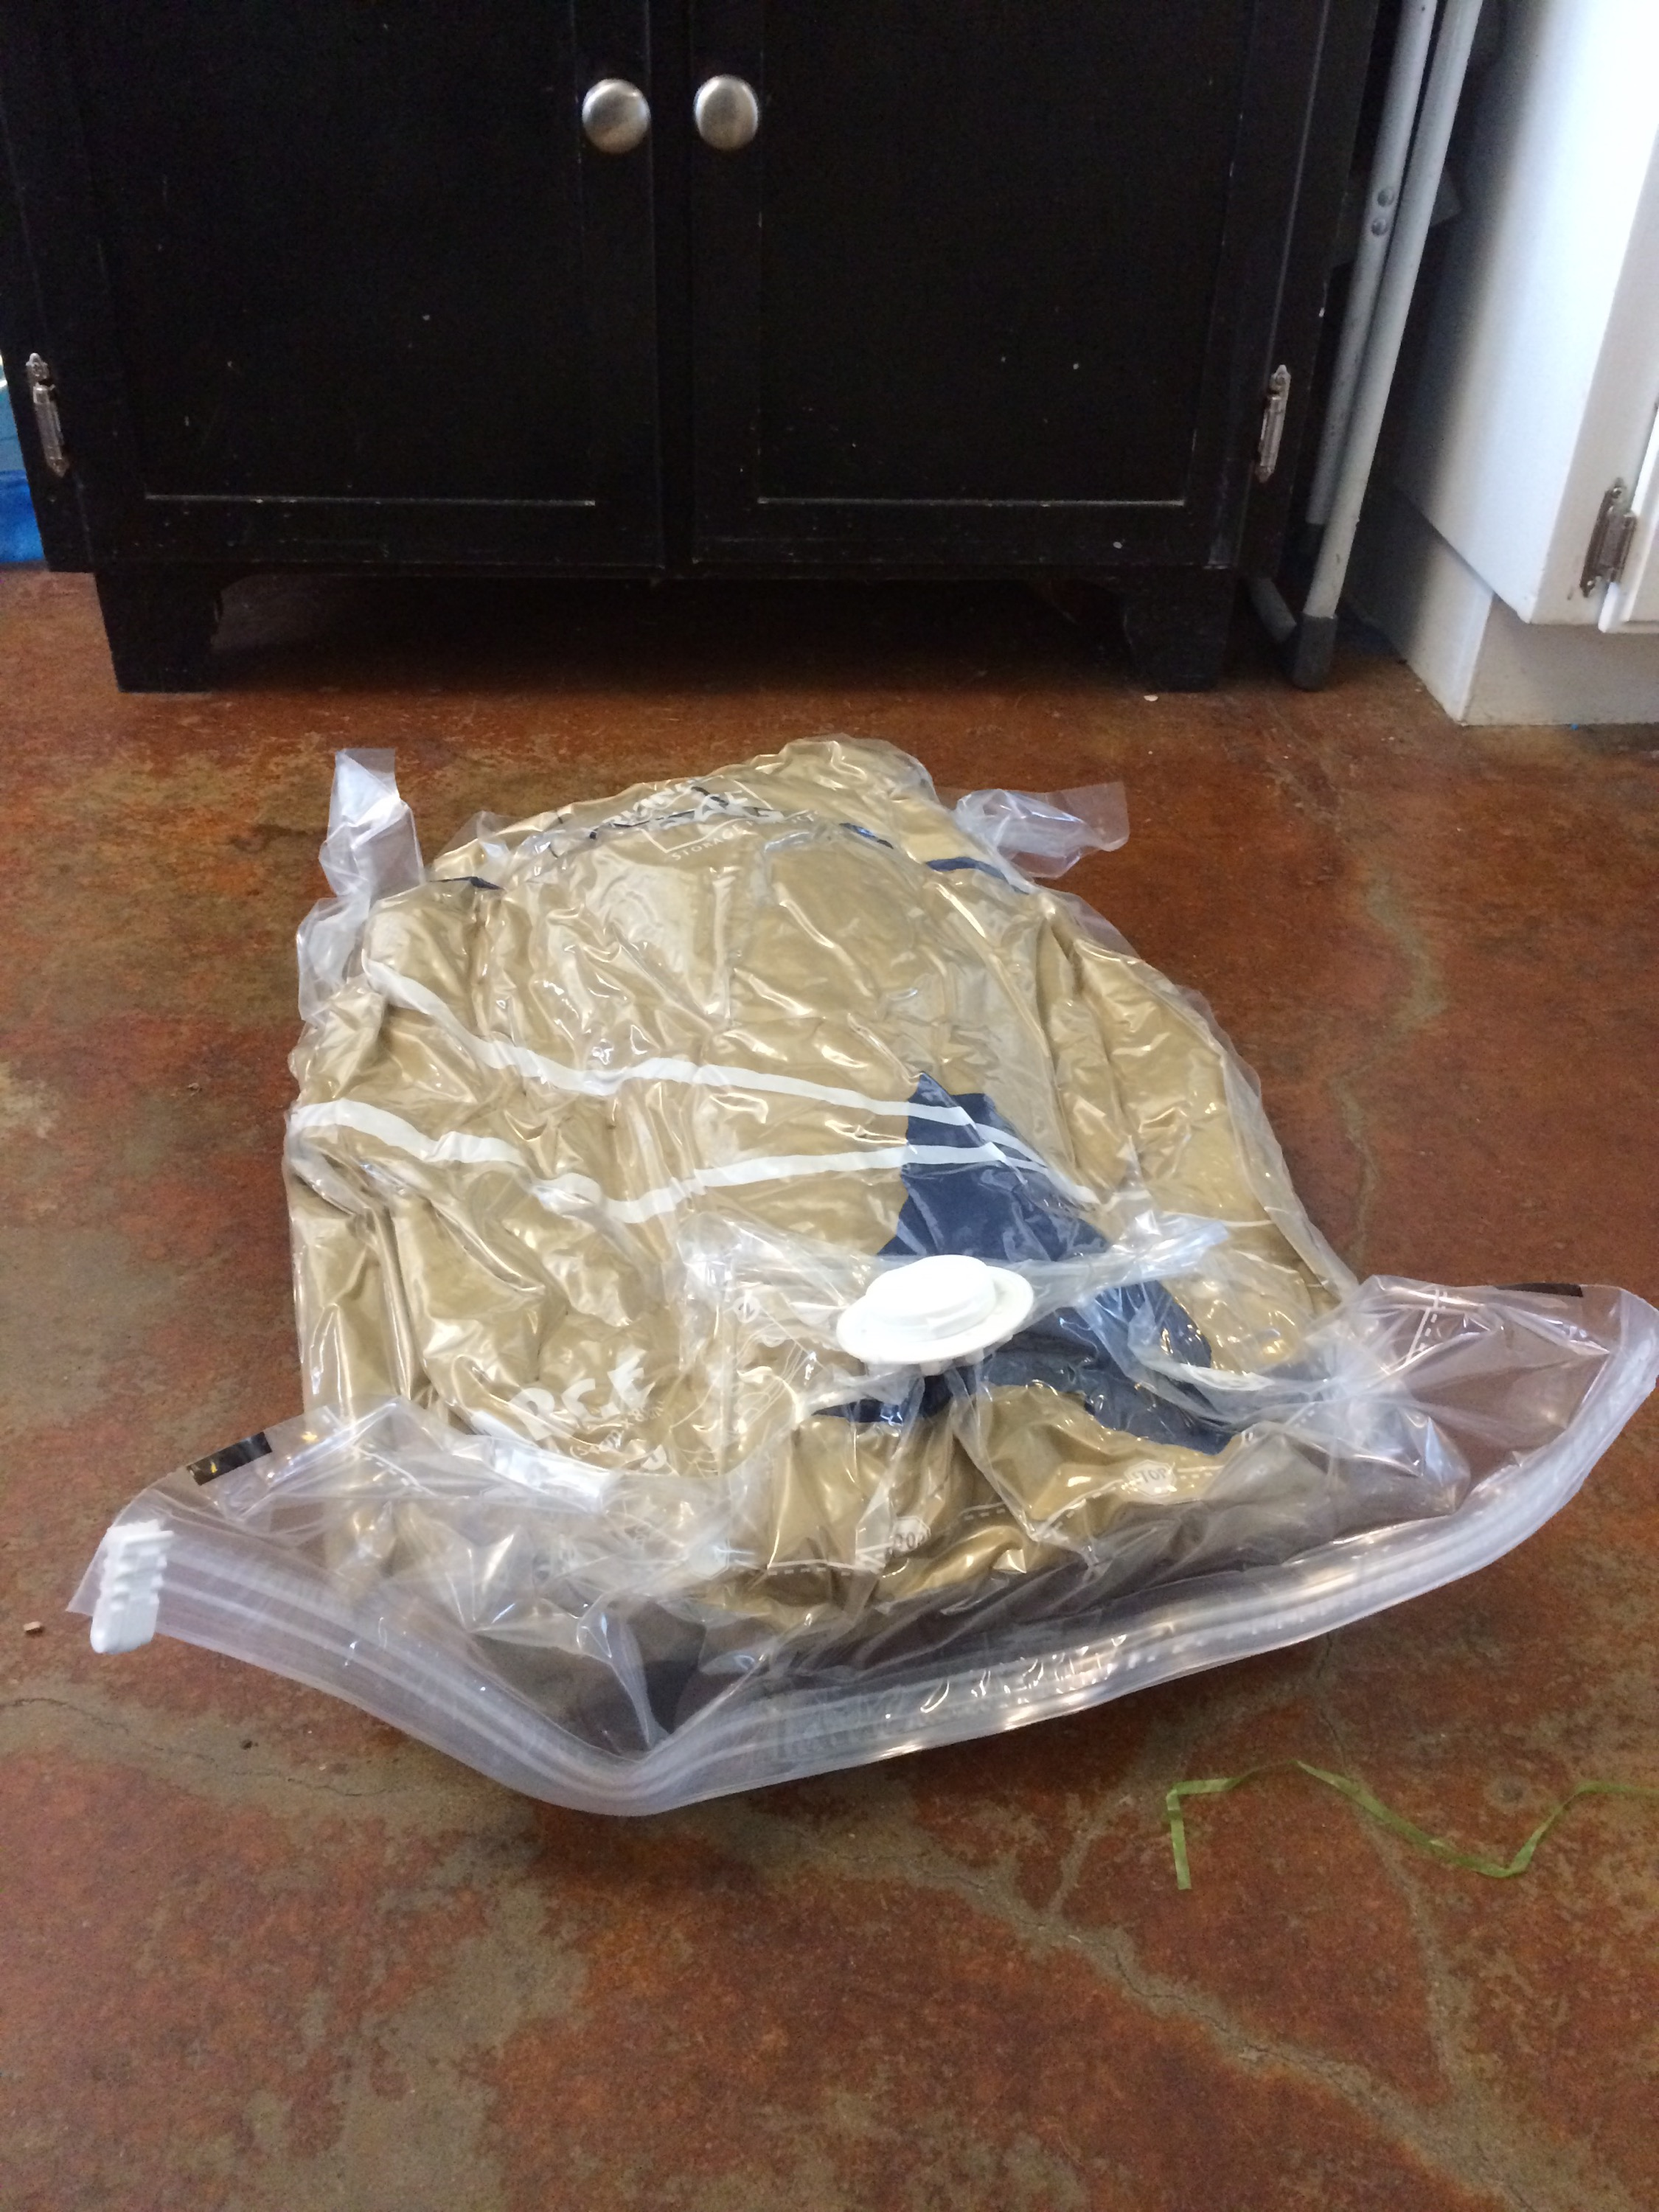 Vacuum sealed sleeping bag laying flat